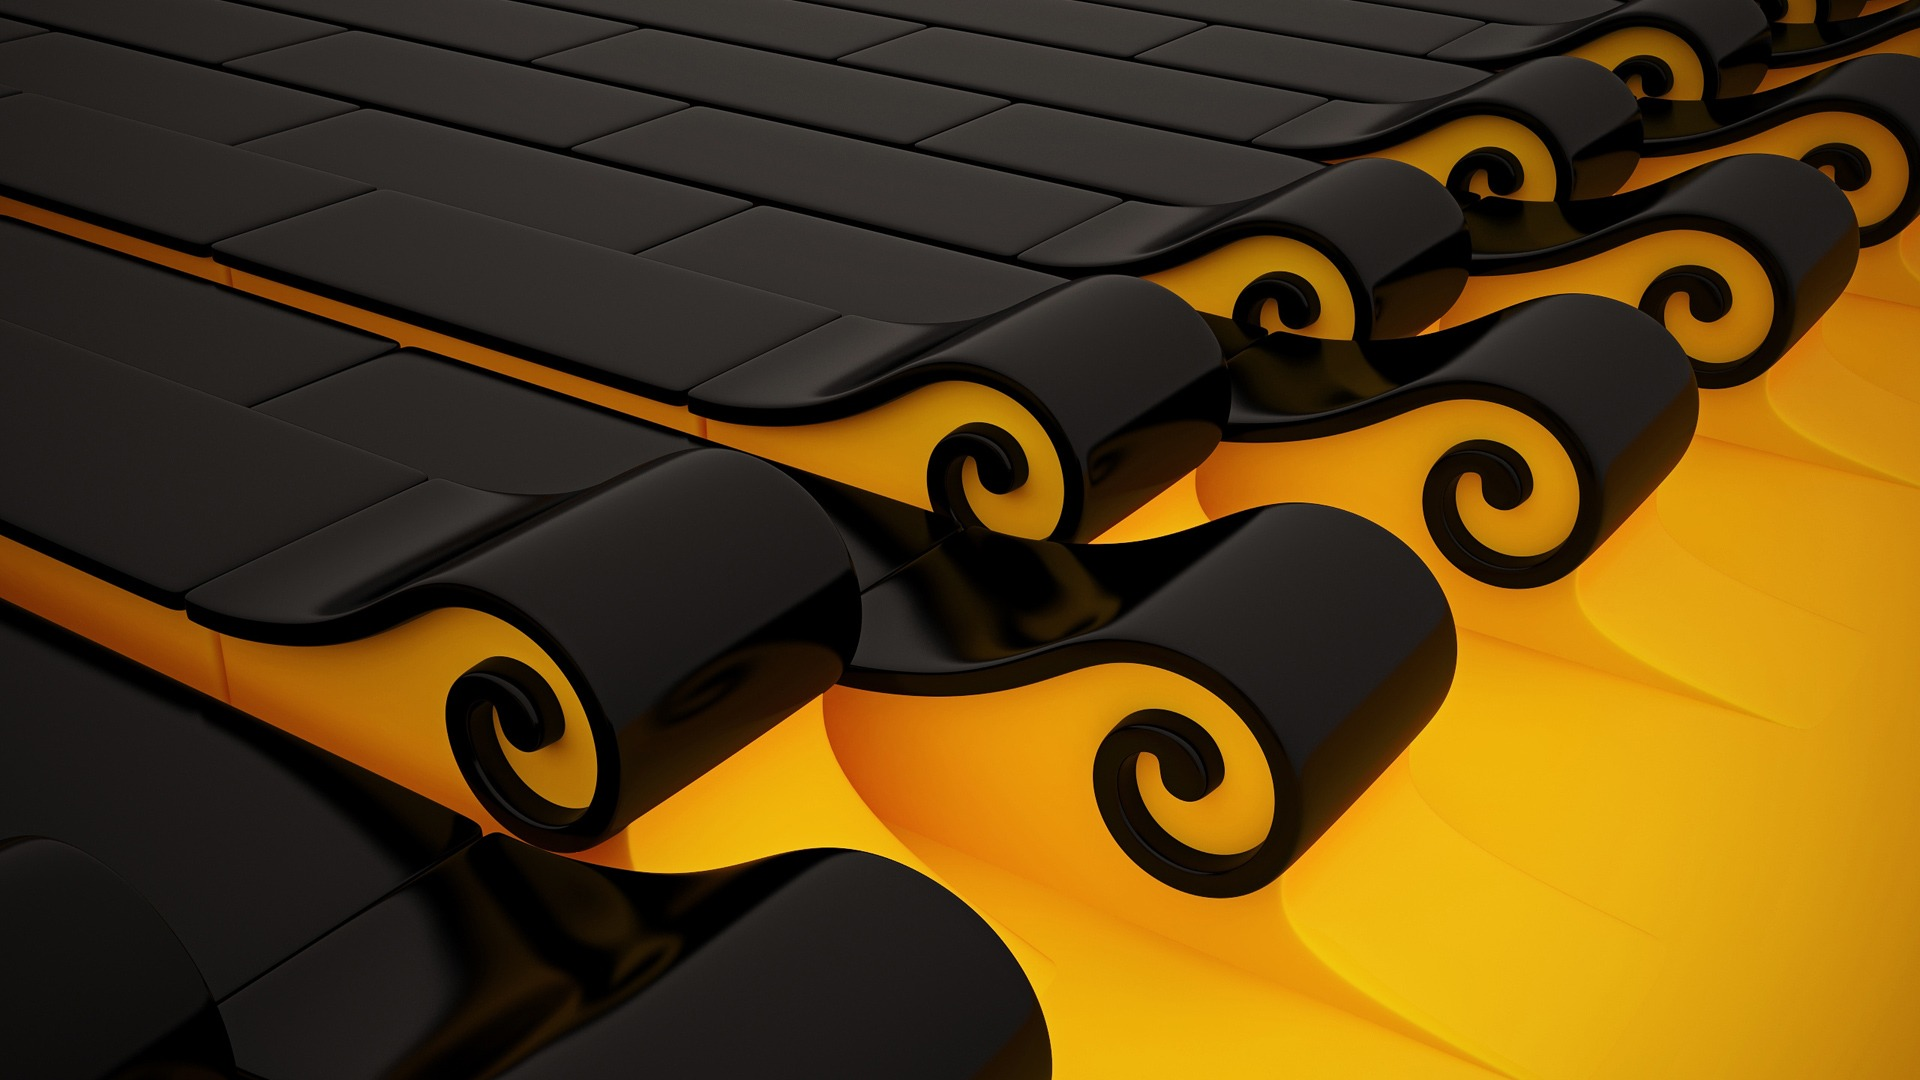 Wallpaper Abstract Yellow Black Wallpaper Hd For Android